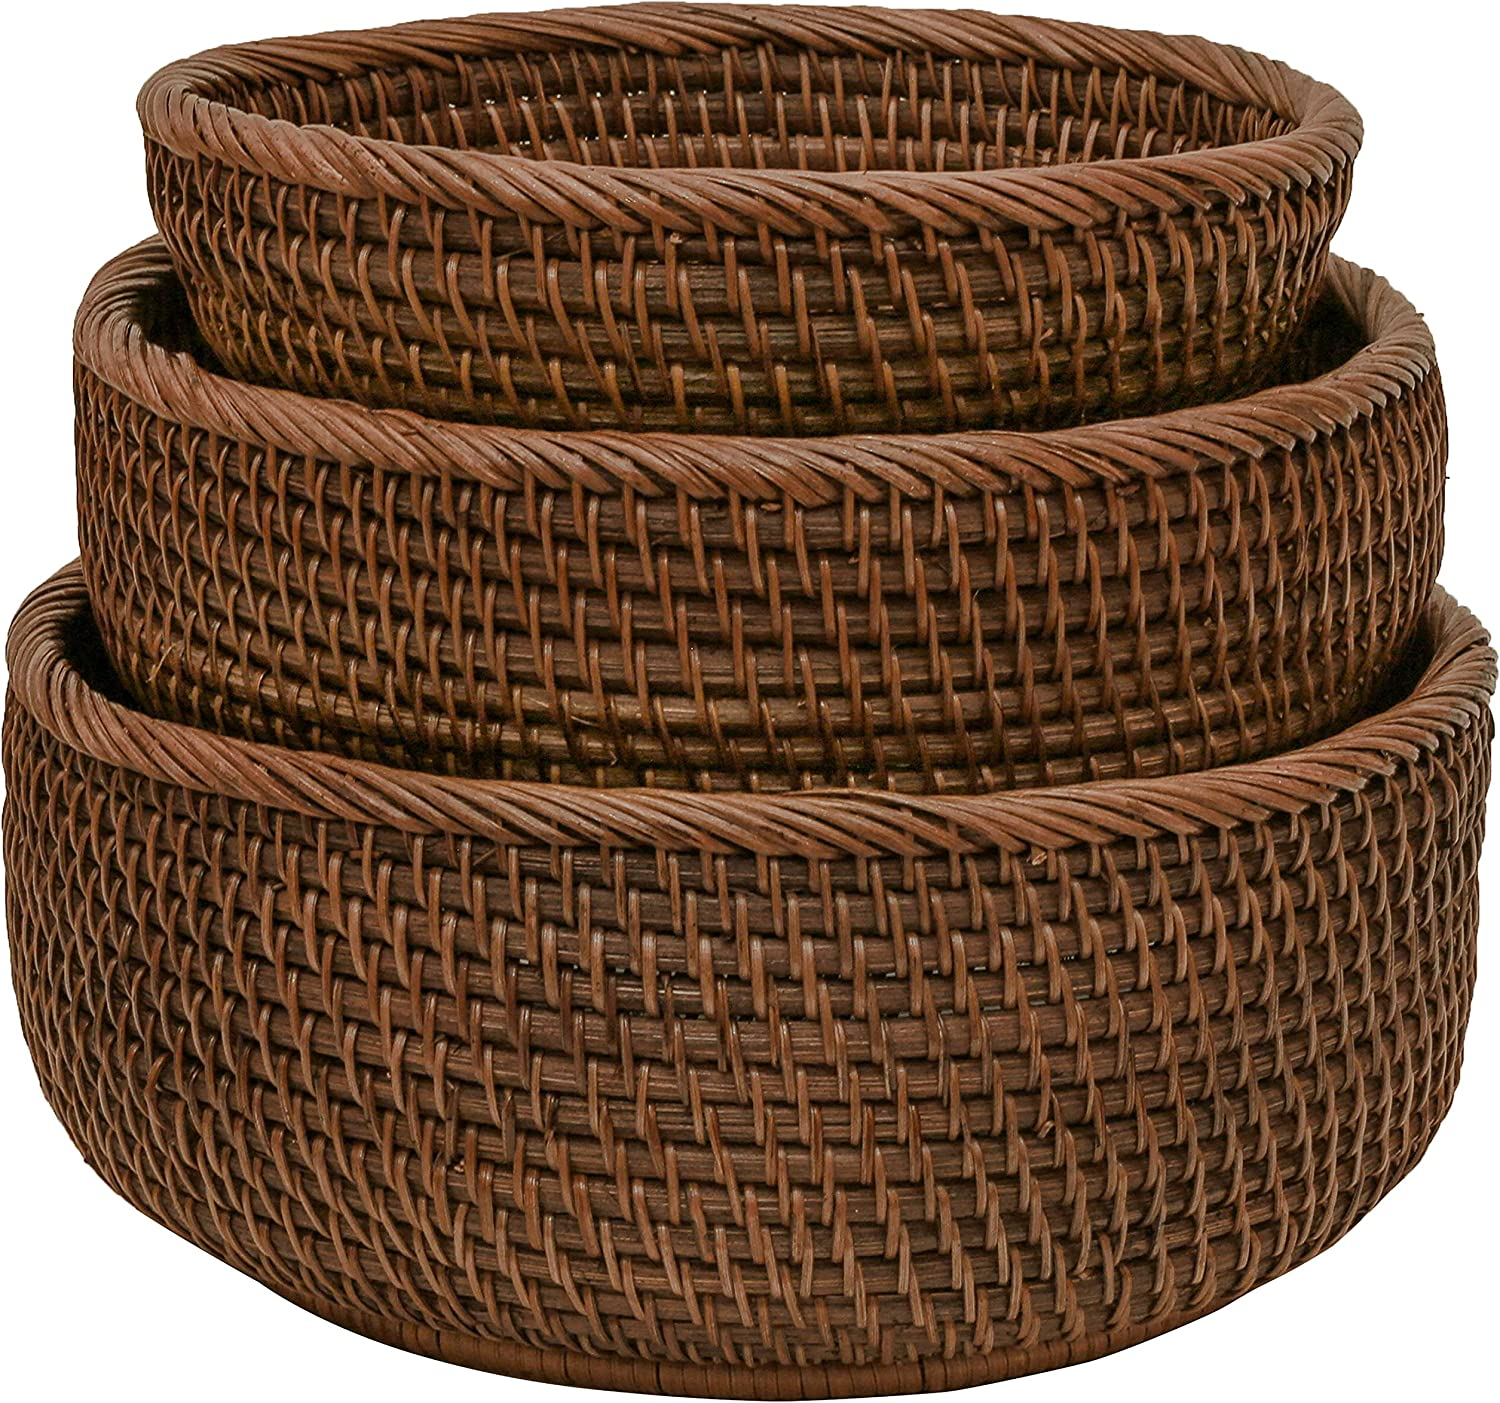 Round Wicker Baskets Handwoven Fruit And Vegetable Storage For Serving Potatoes Onions Bread Rattan Decor Basket Stackable Set 3 Fruit Holder For Kitchen Countertop Organizing Bathroom (Dark Brown)